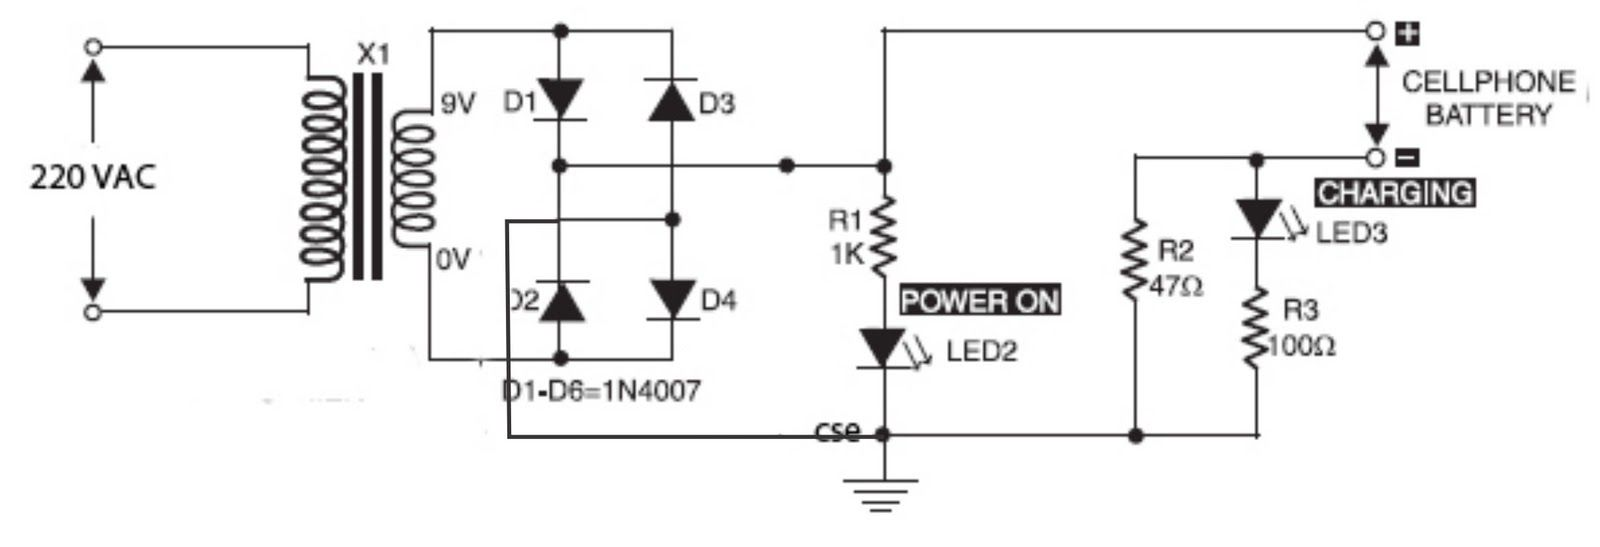 small resolution of simple rapid battery charger circuit diagram electronic circuit mobile battery charger circuit diagram electronic circuit diagrams